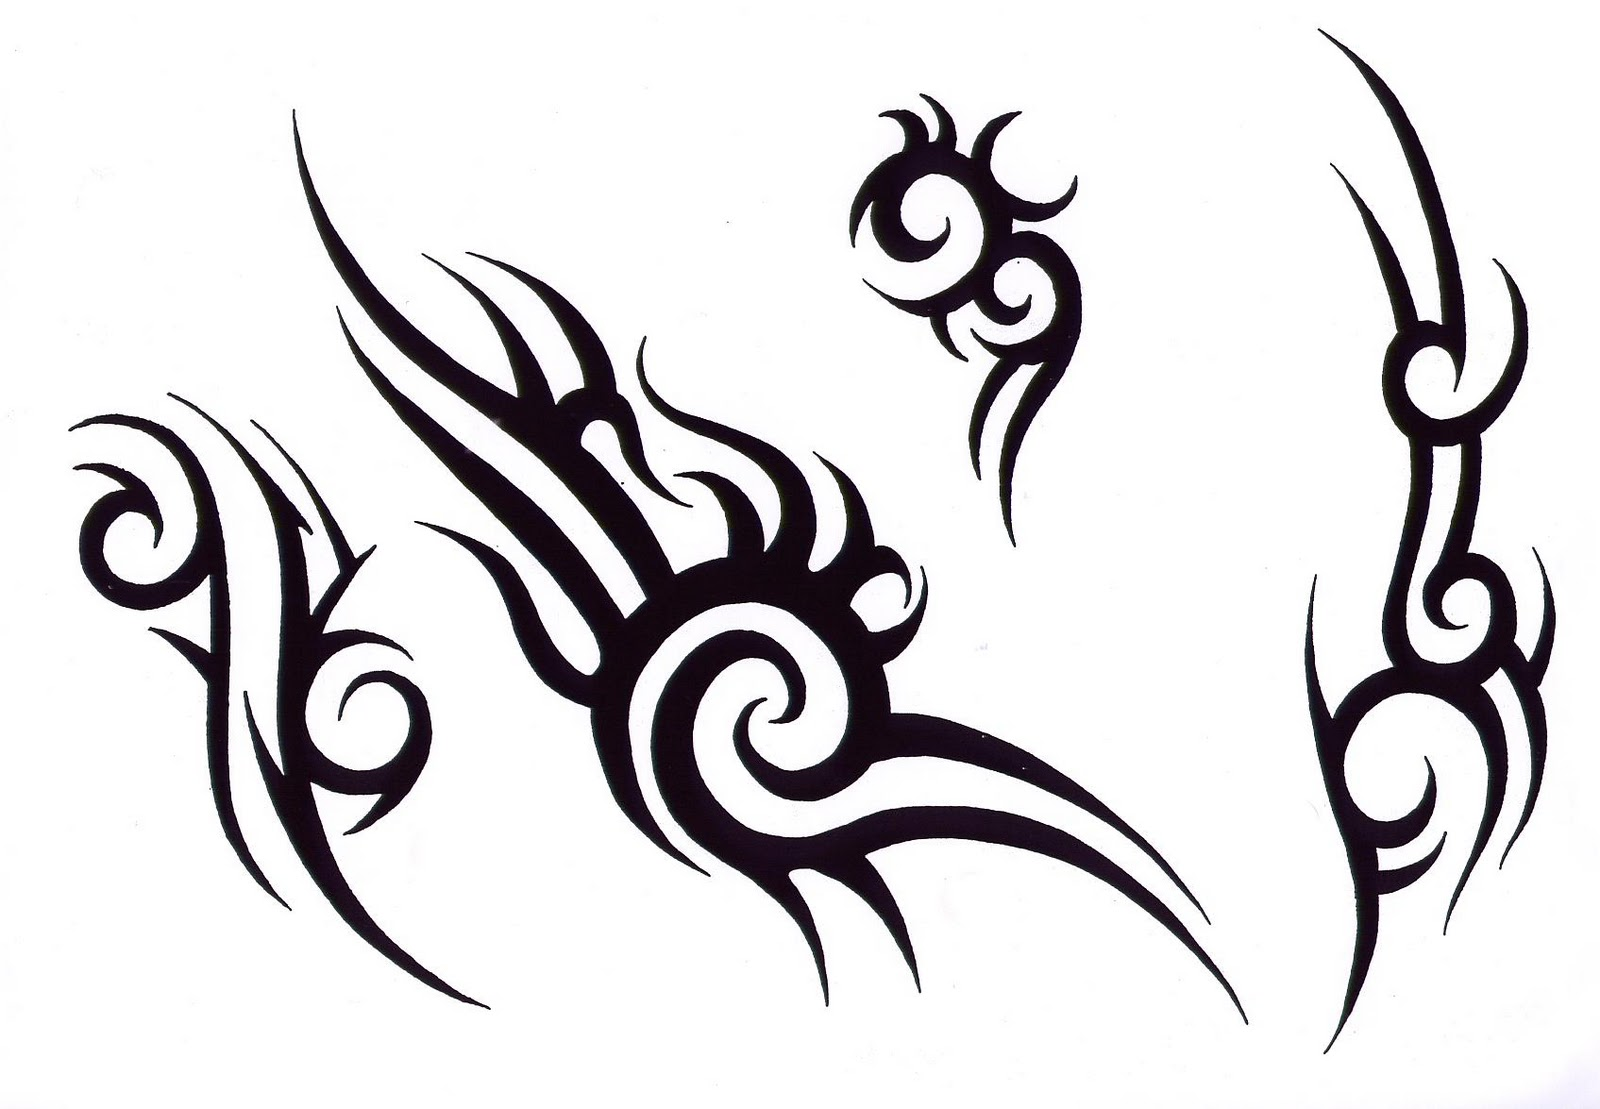 Sorry, Tribal tattoo designs confirm